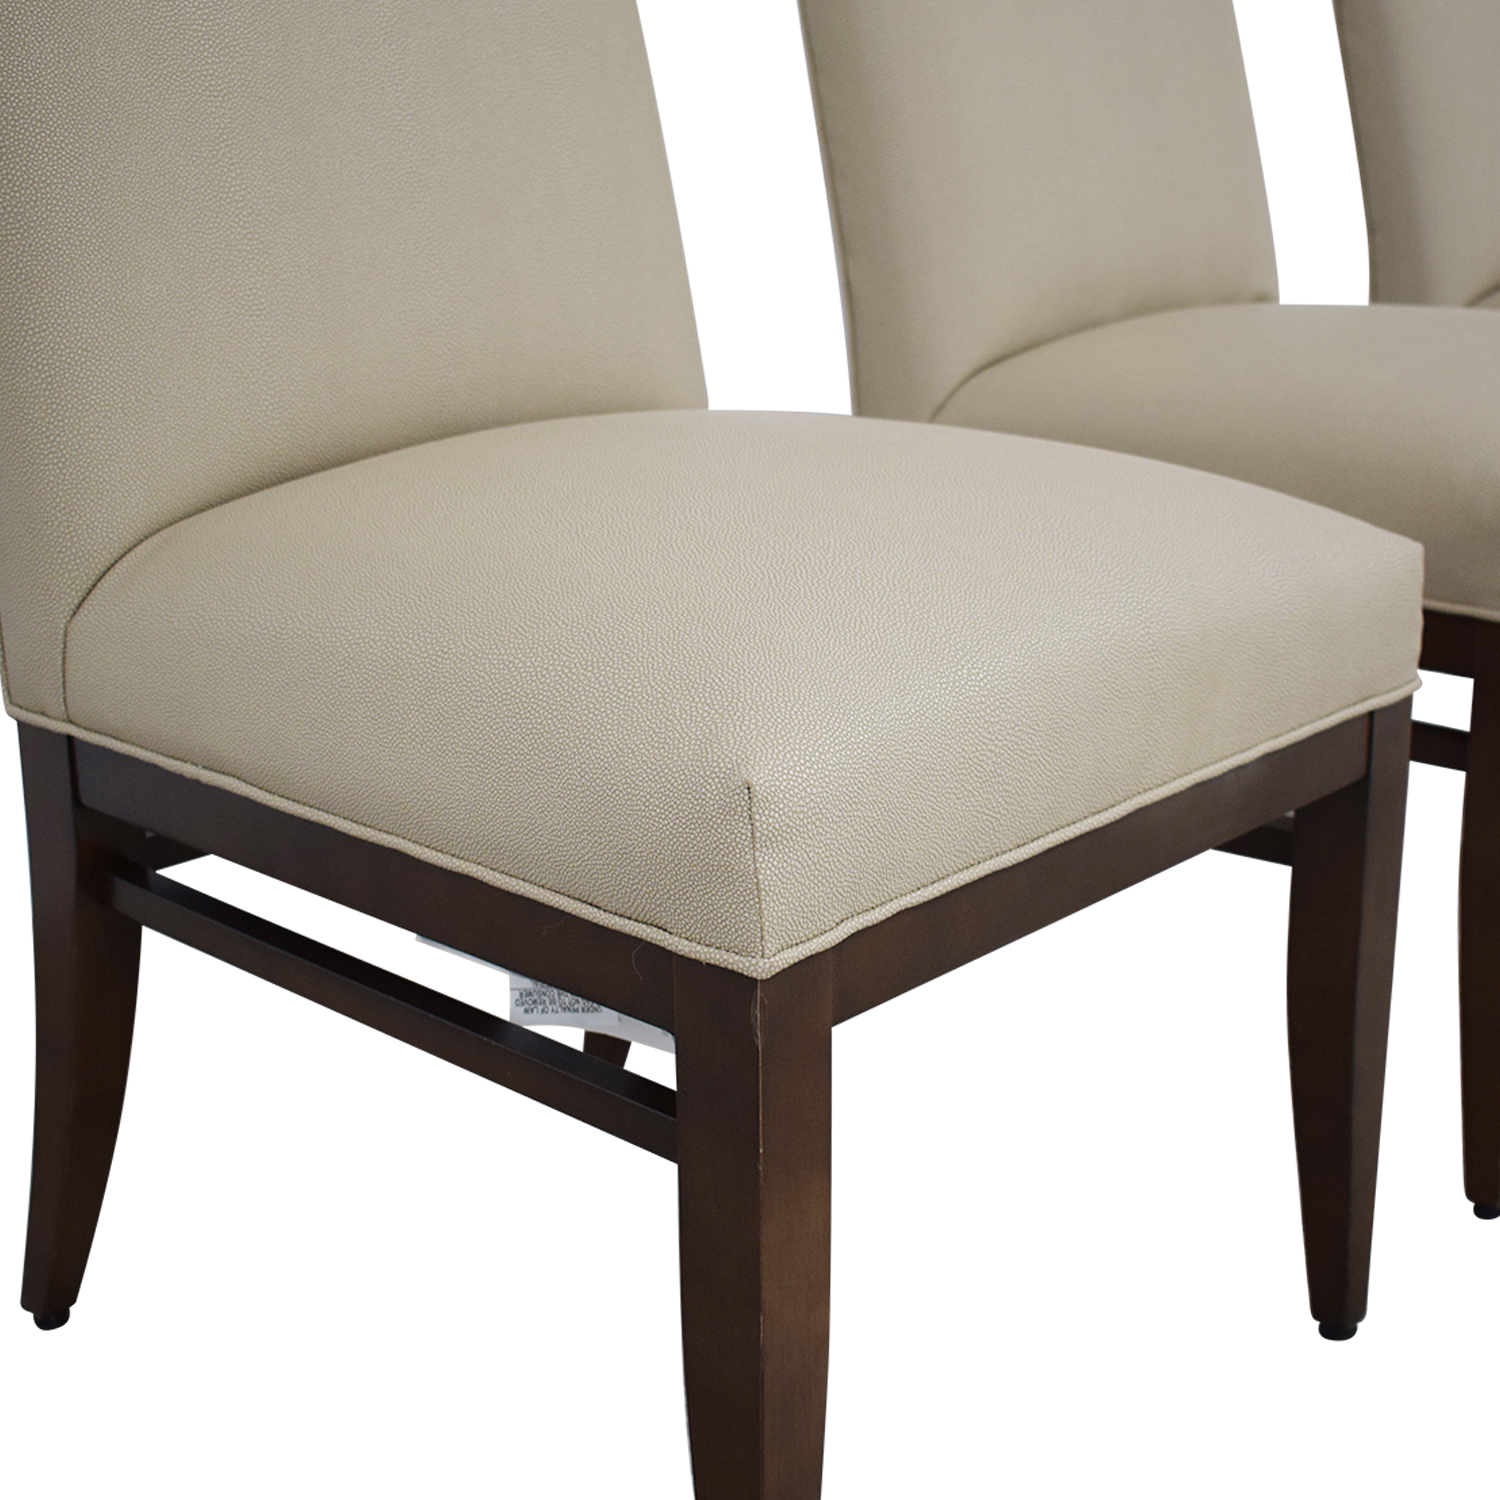 Duralee Duralee Kent Upholstered Dining Chairs on sale